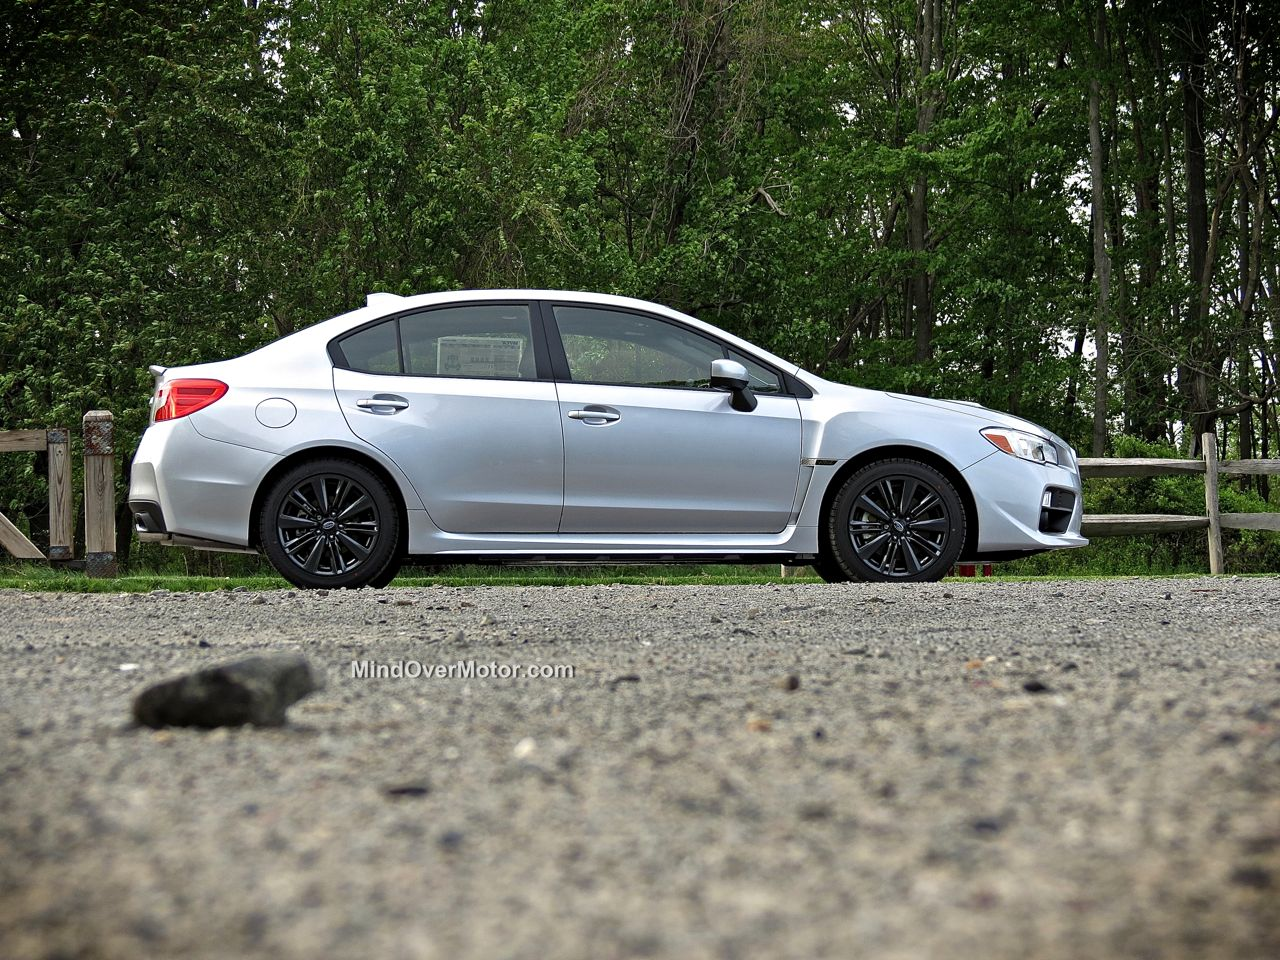 2015 Subaru WRX Side View